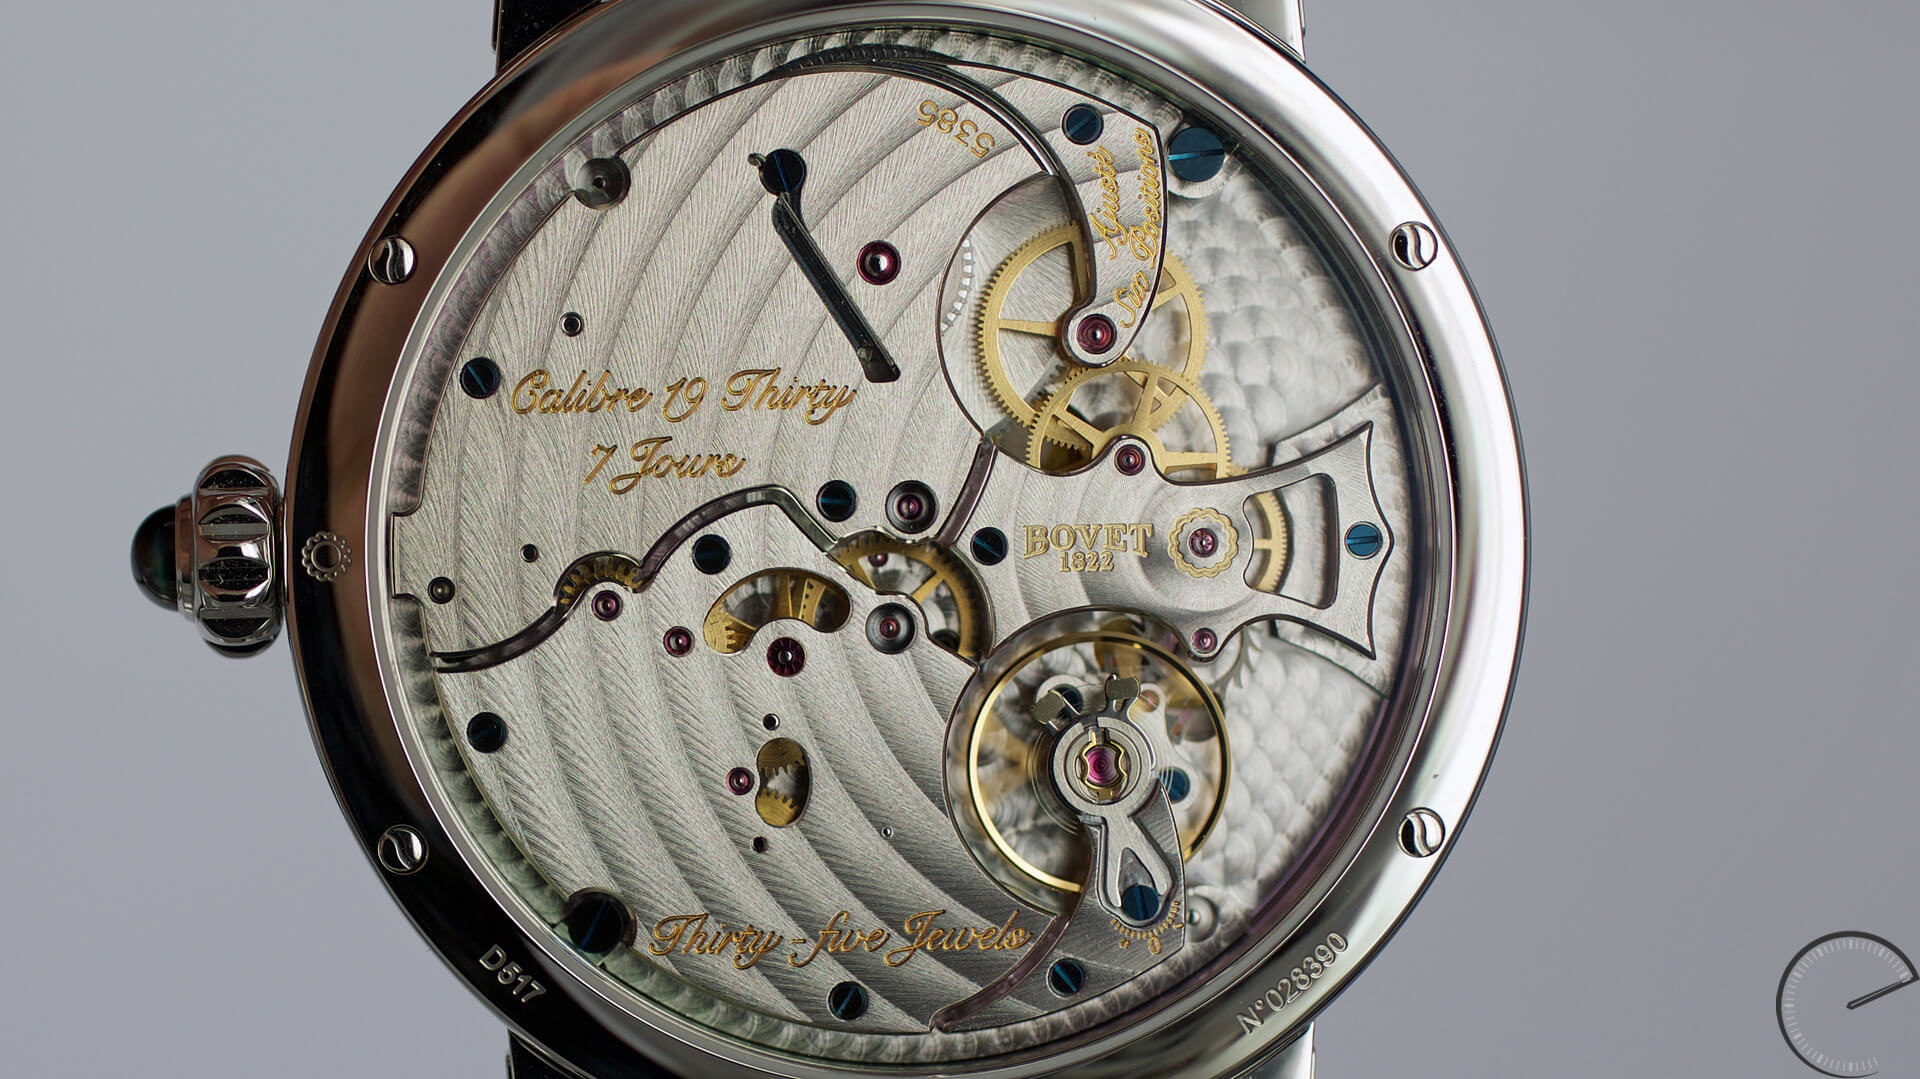 Bovet 19 Thirty with Dimier case - ESCAPEMENT magazine by Angus Davies